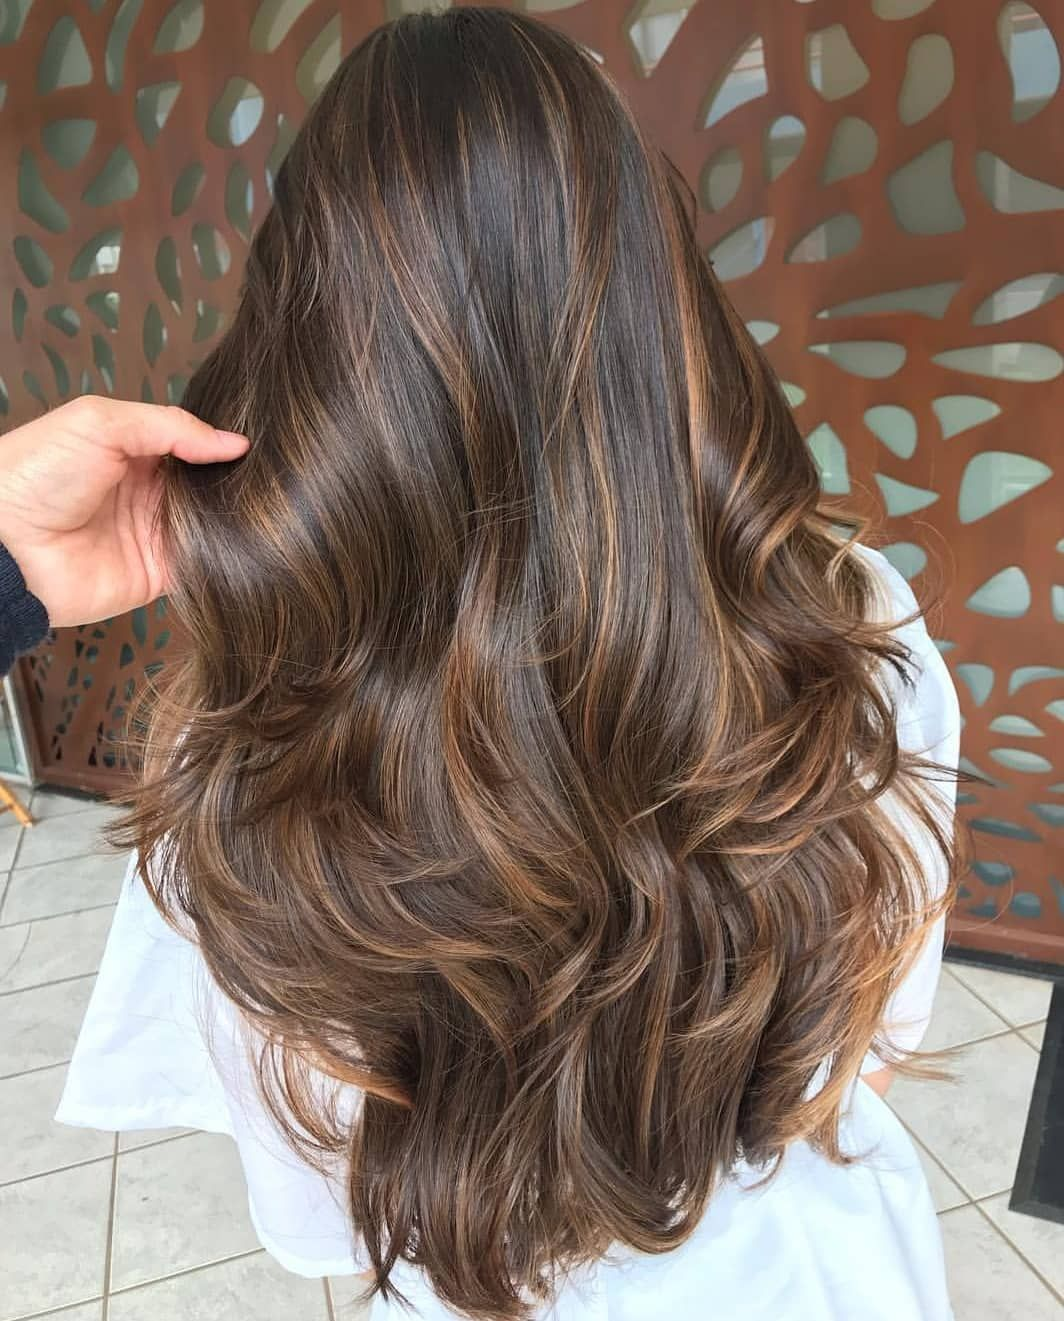 Prom Hairstyles For Long Hair Hair Haircuts For Long